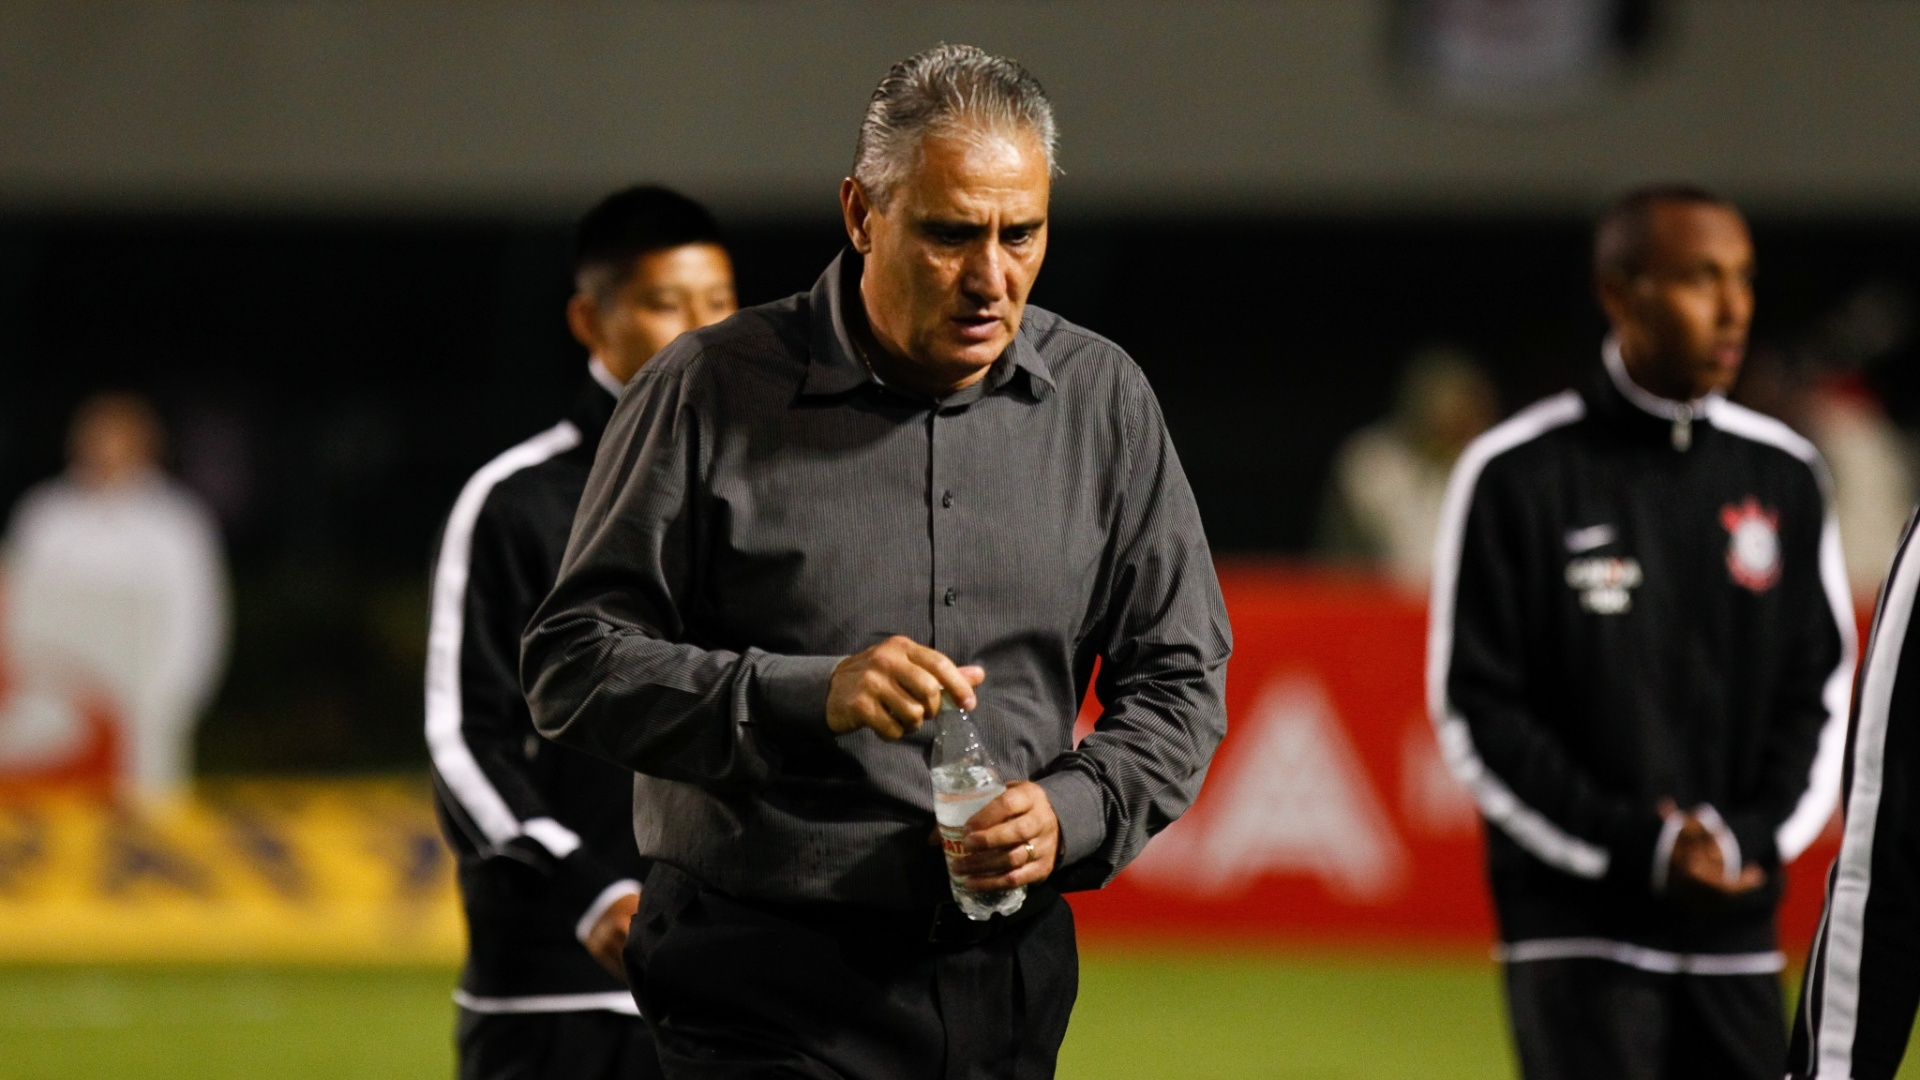 28/03/2013 - Tite em ao pelo Corinthians no empate por 1 a 1 contra o Penapolense